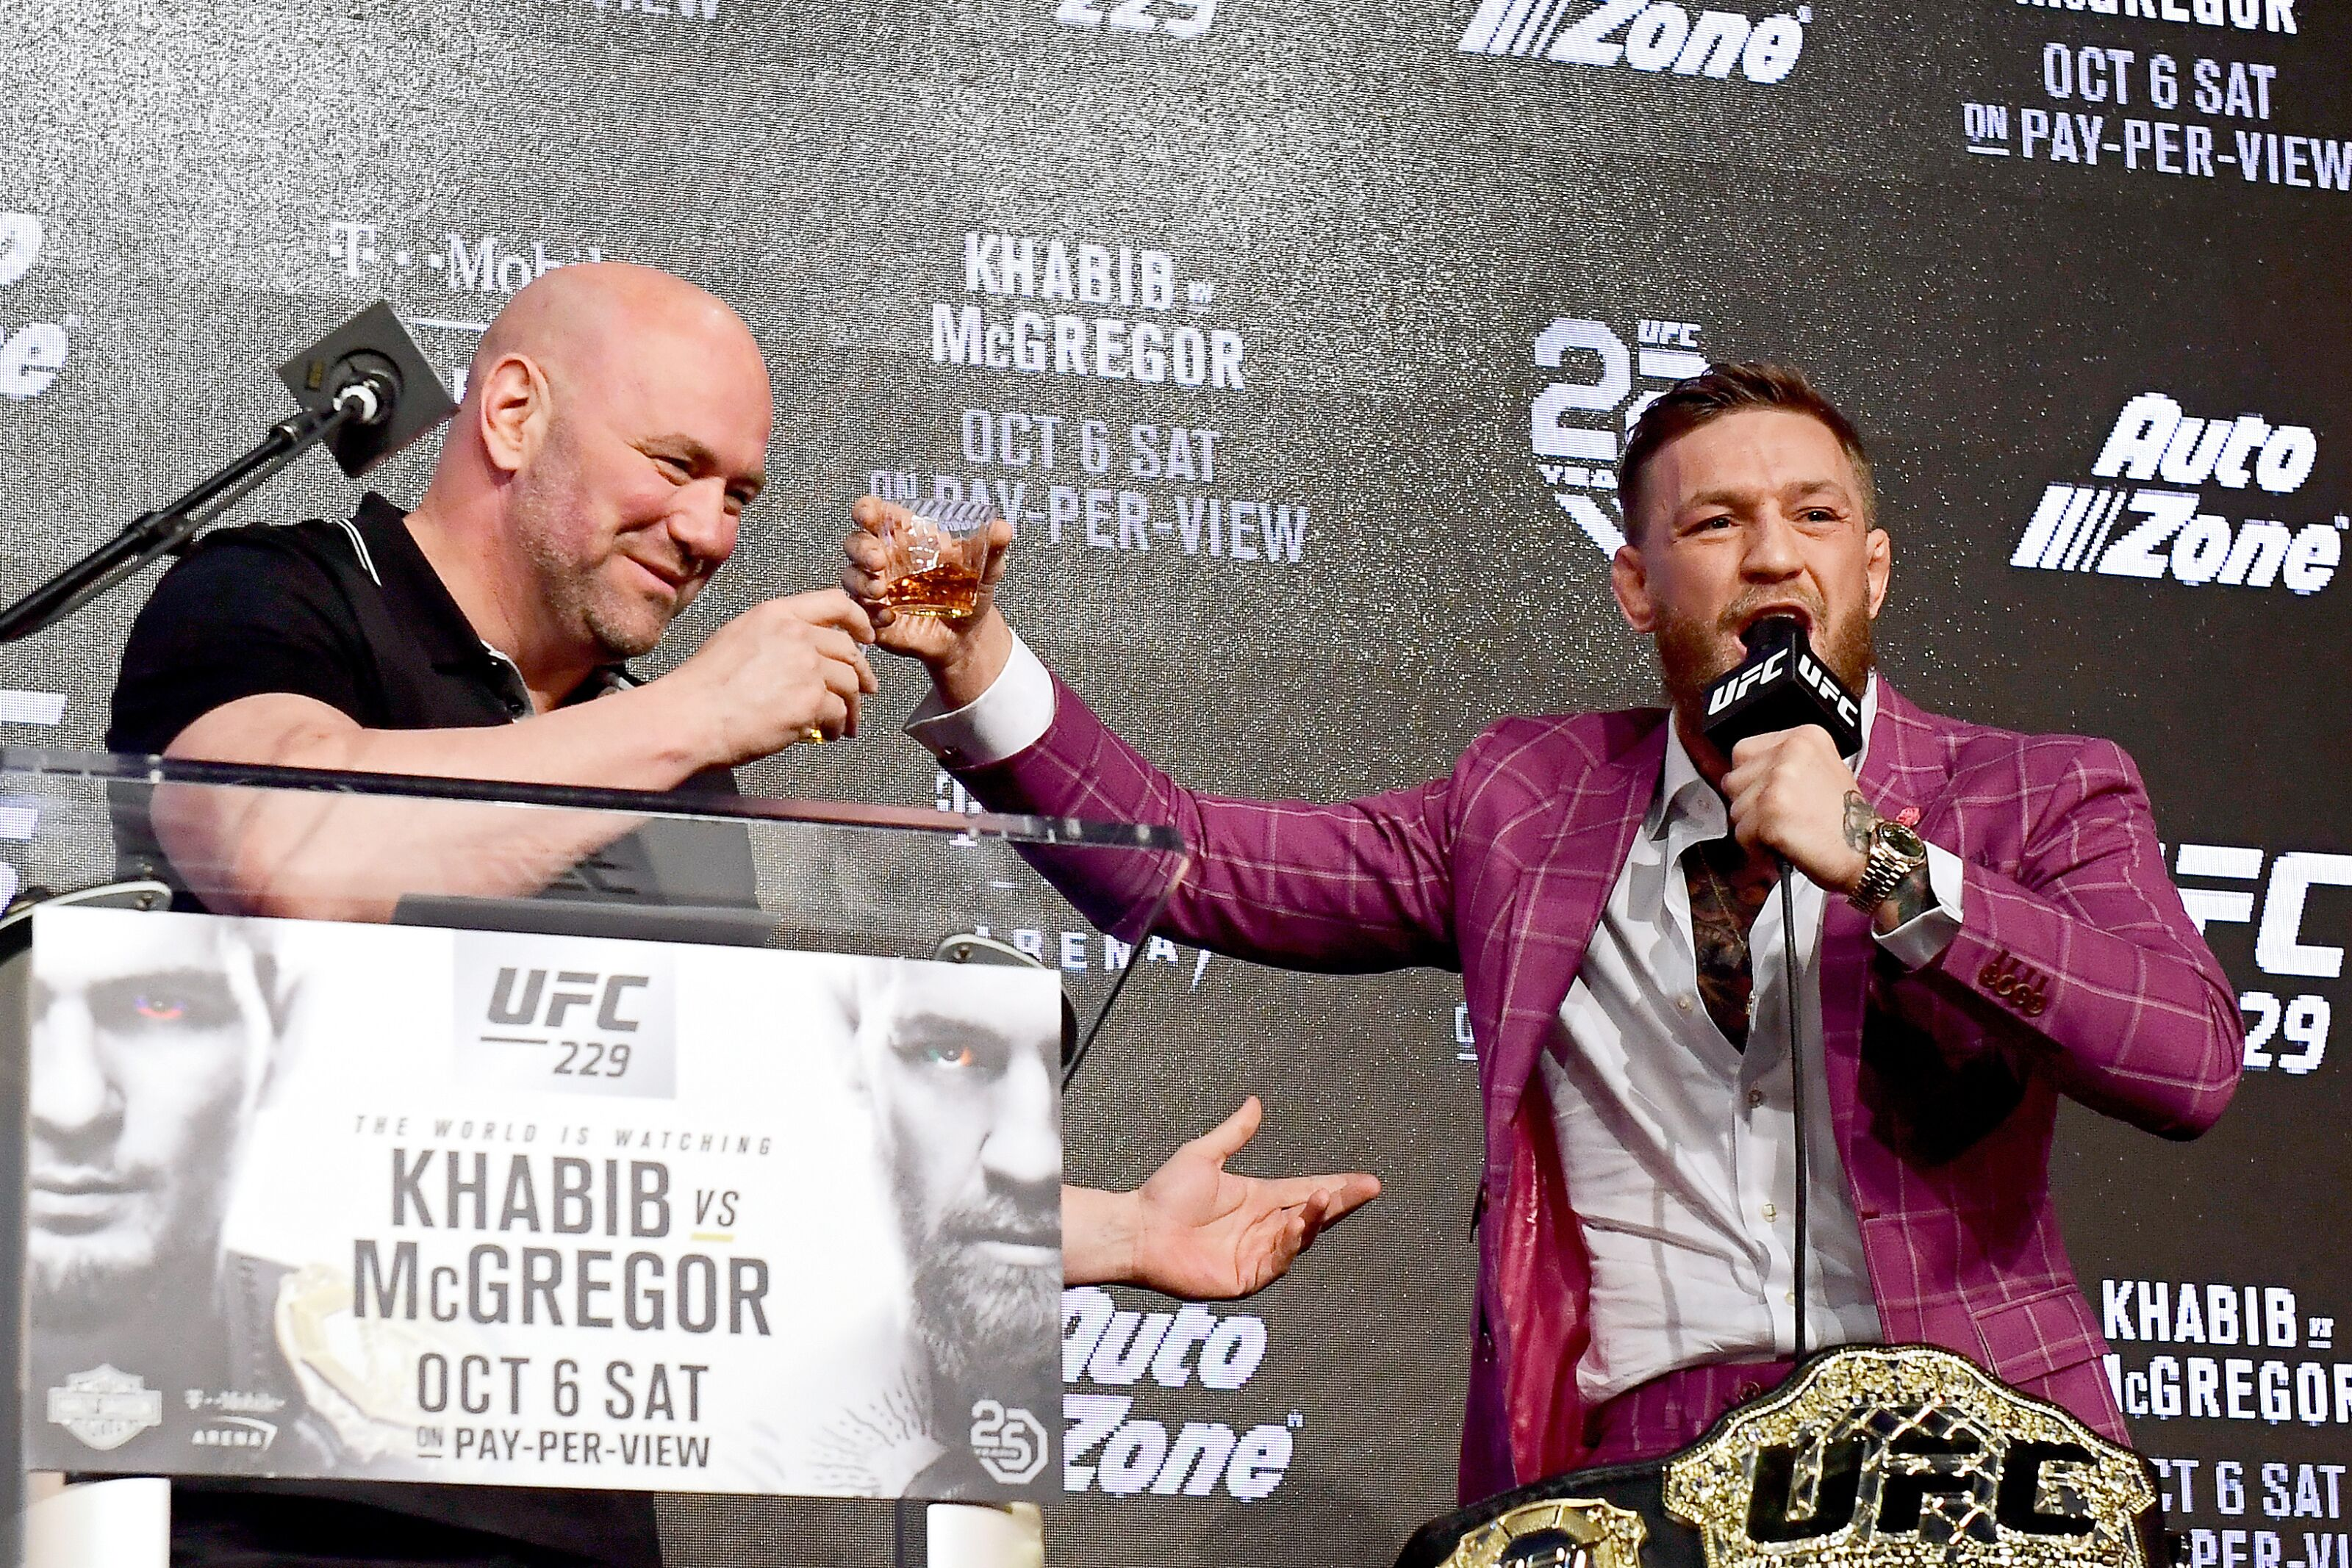 Dana White says Conor McGregor will fight on Dec. 14 in Las Vegas or 'early next year'